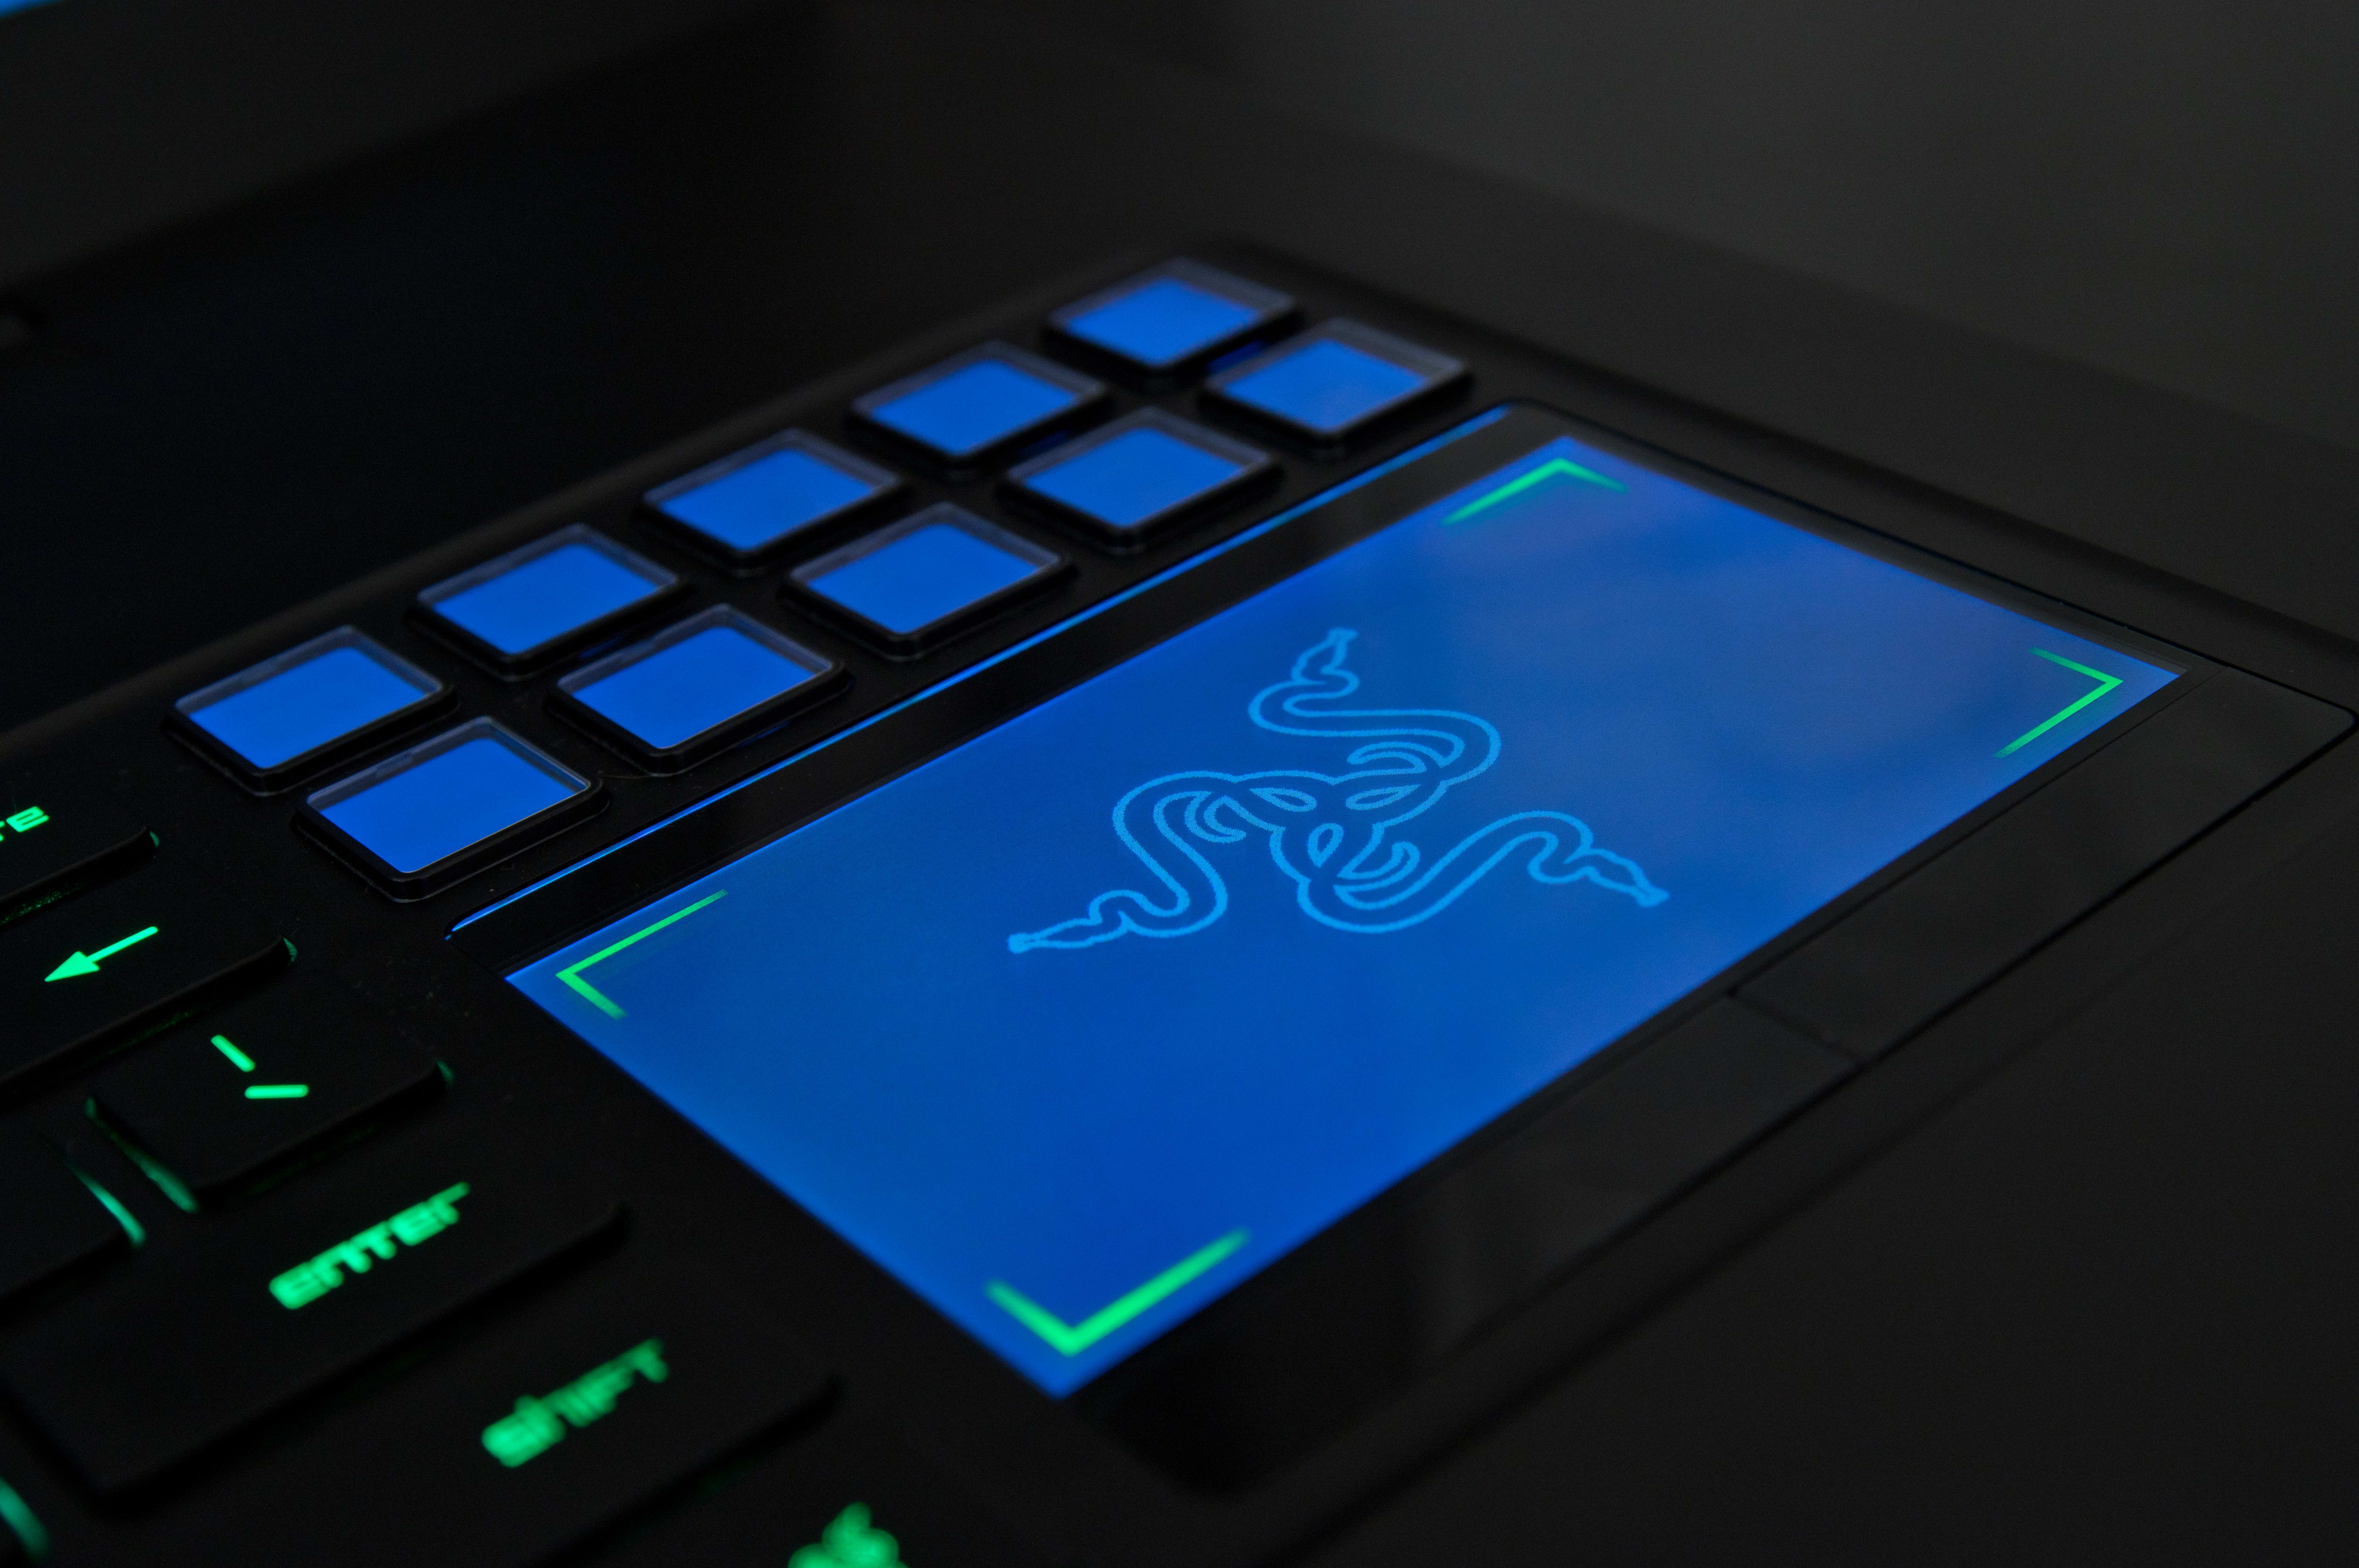 A photo of the Razer Blade Pro's touchpad.